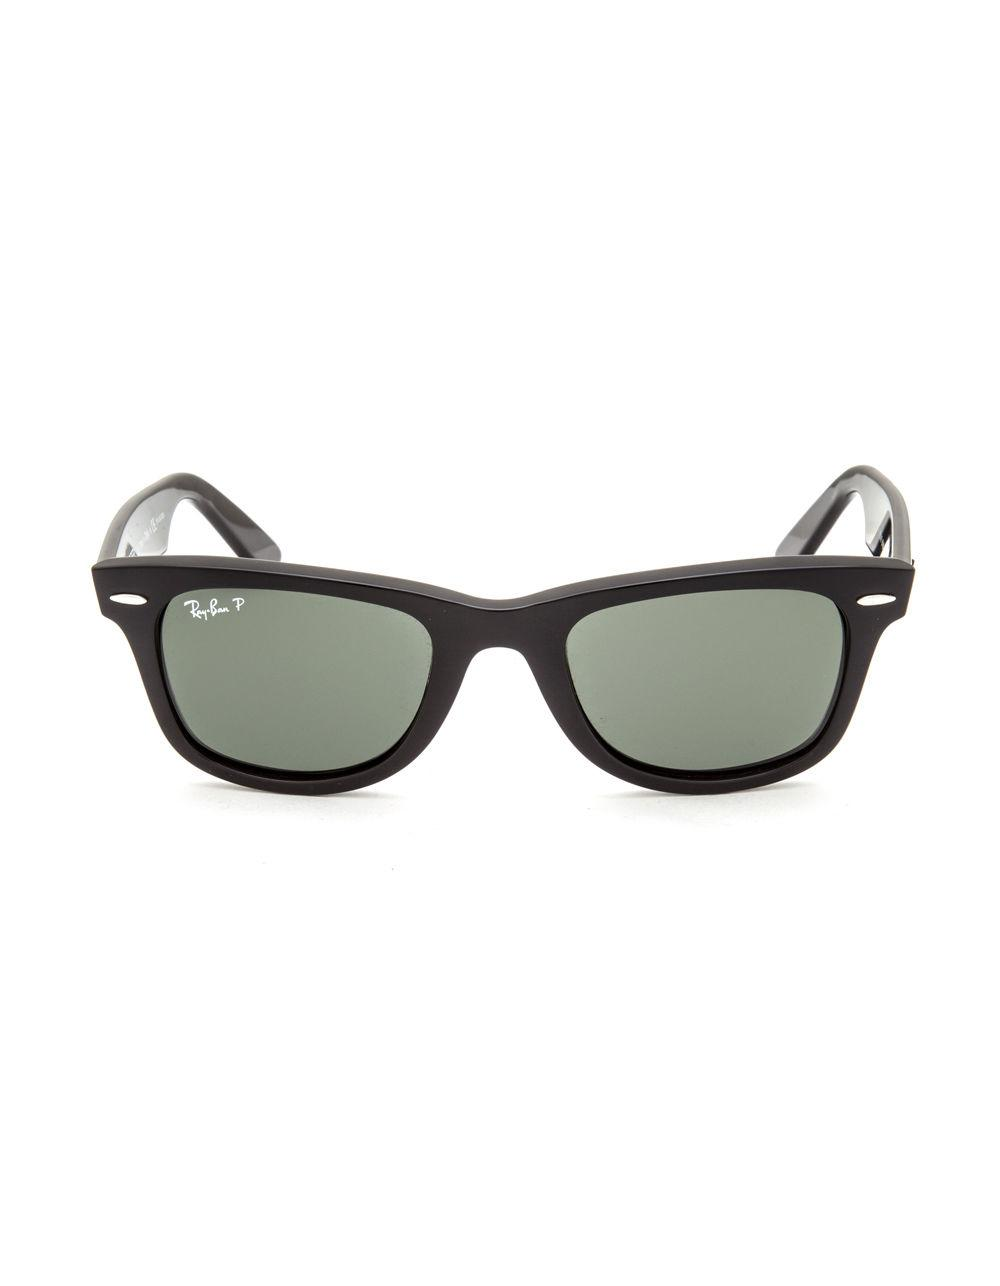 5d8c908f77 Lyst - Ray-Ban Original Wayfarer Classic Polarized Sunglasses in Black for  Men